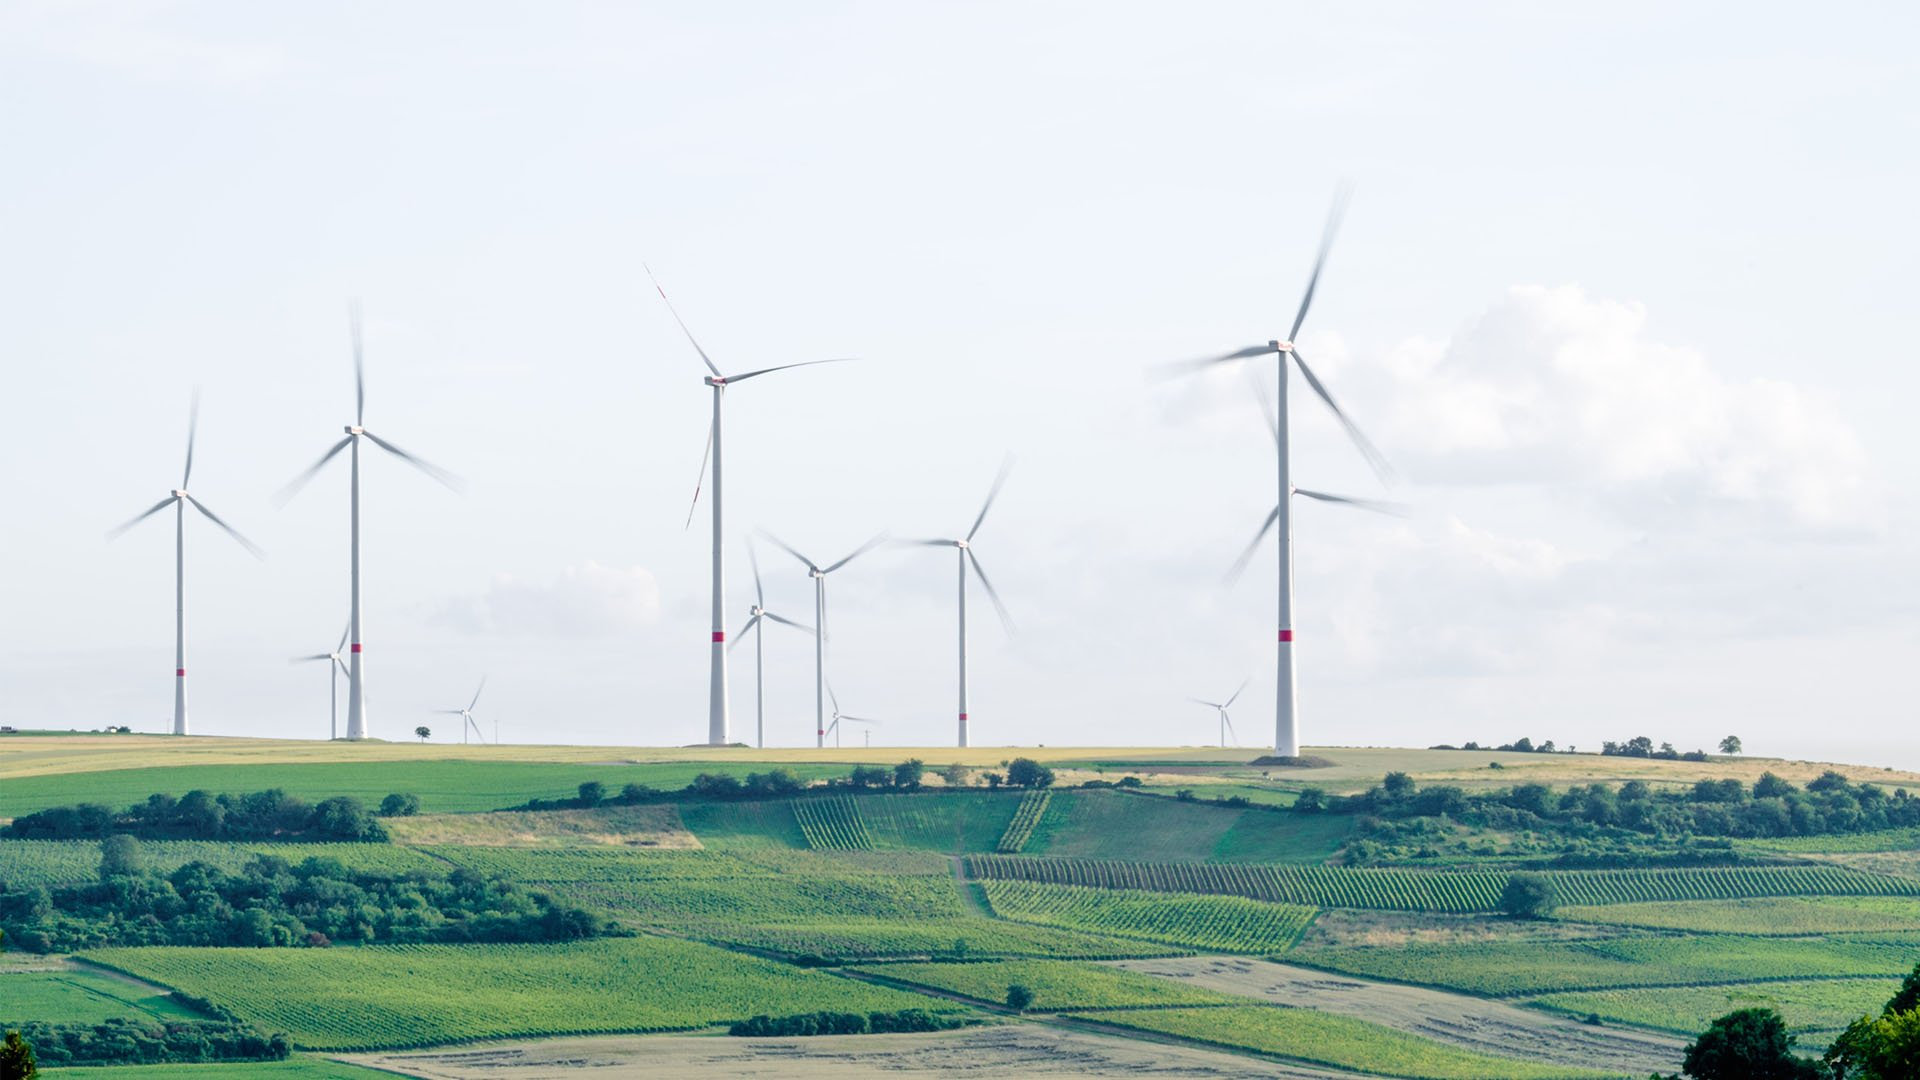 Renewable energy in Denmark: wind power